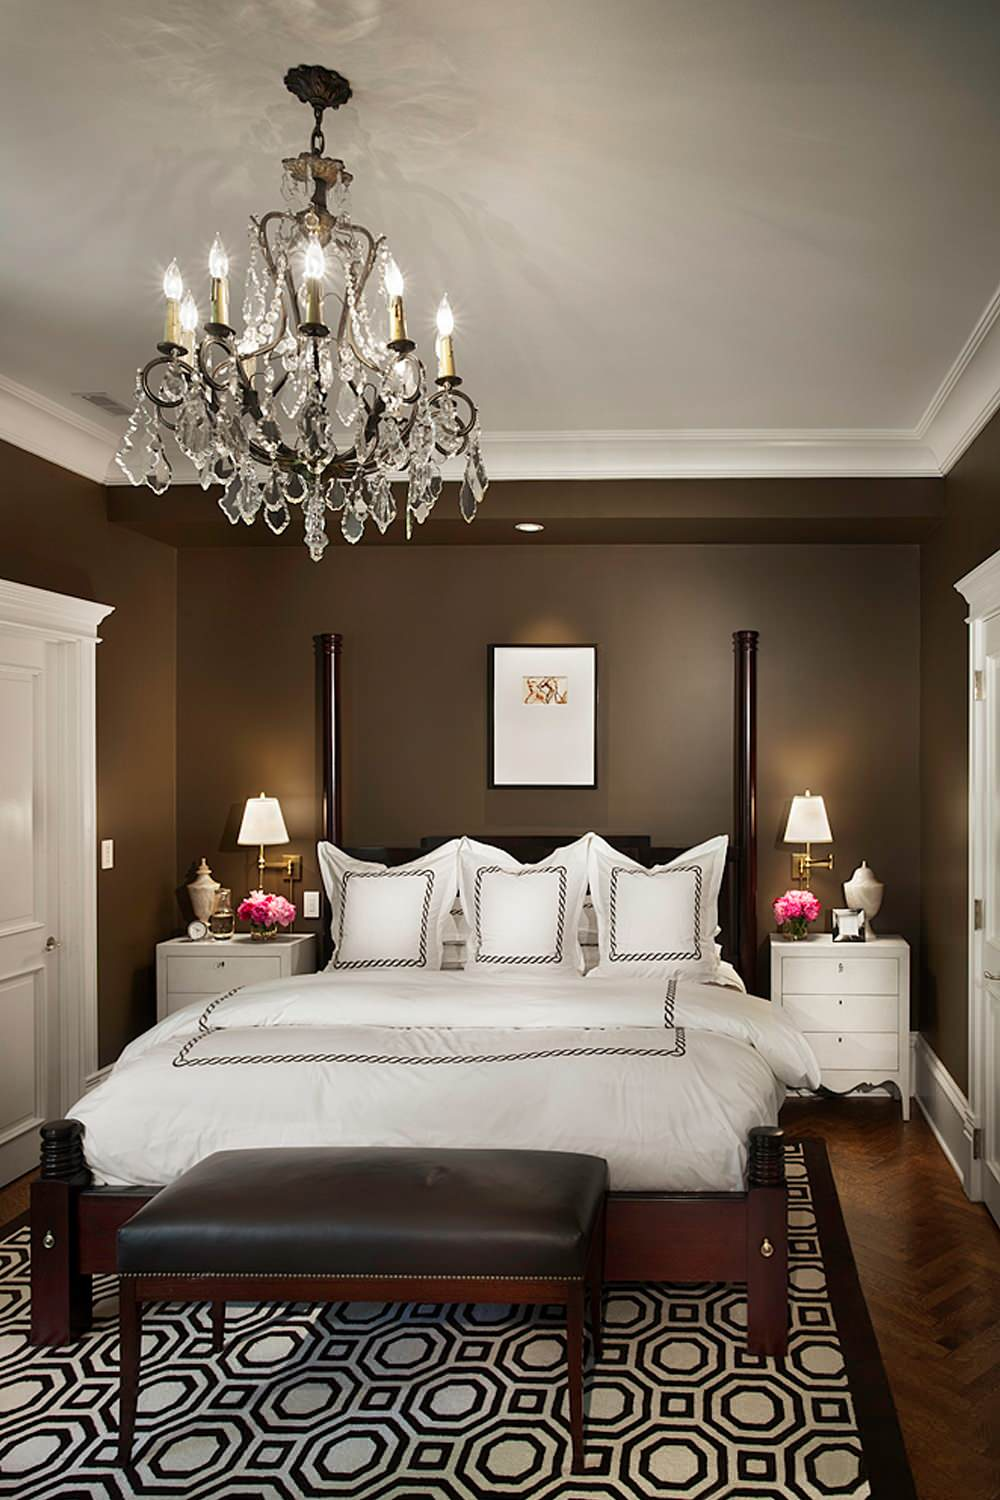 Rug size for queen bed Traditional Bedroom chocolate brown walls crystal chandelier graphic rug